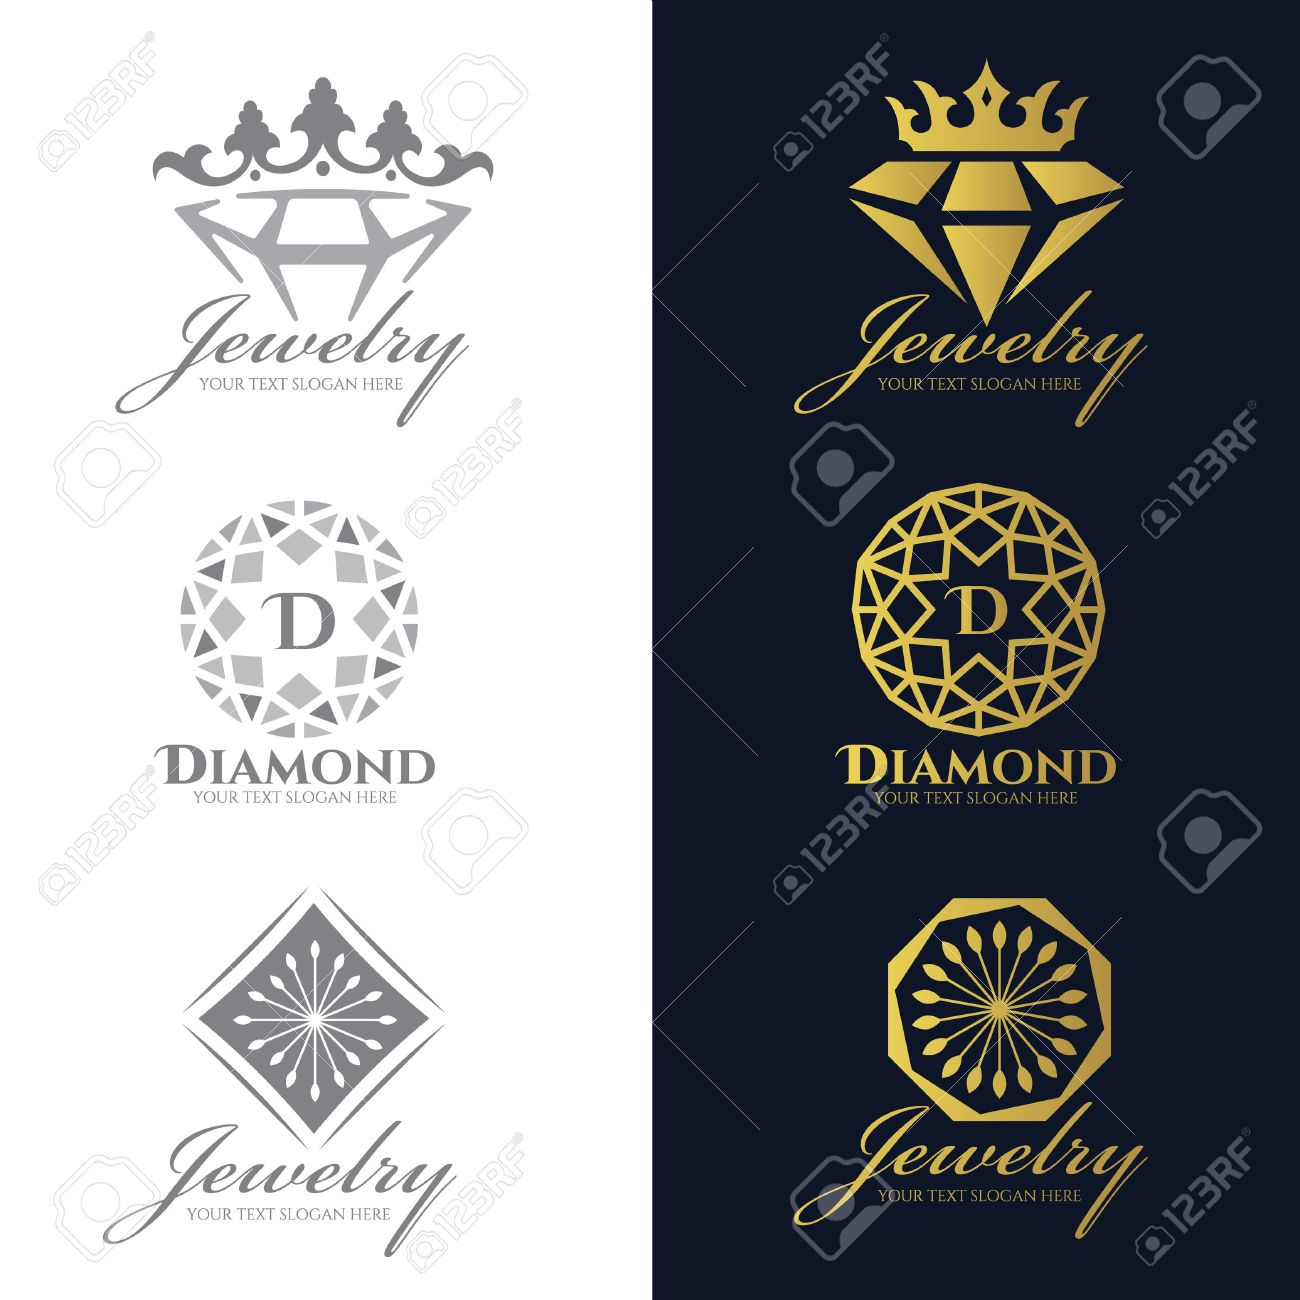 vector royalty diamond image logo template free